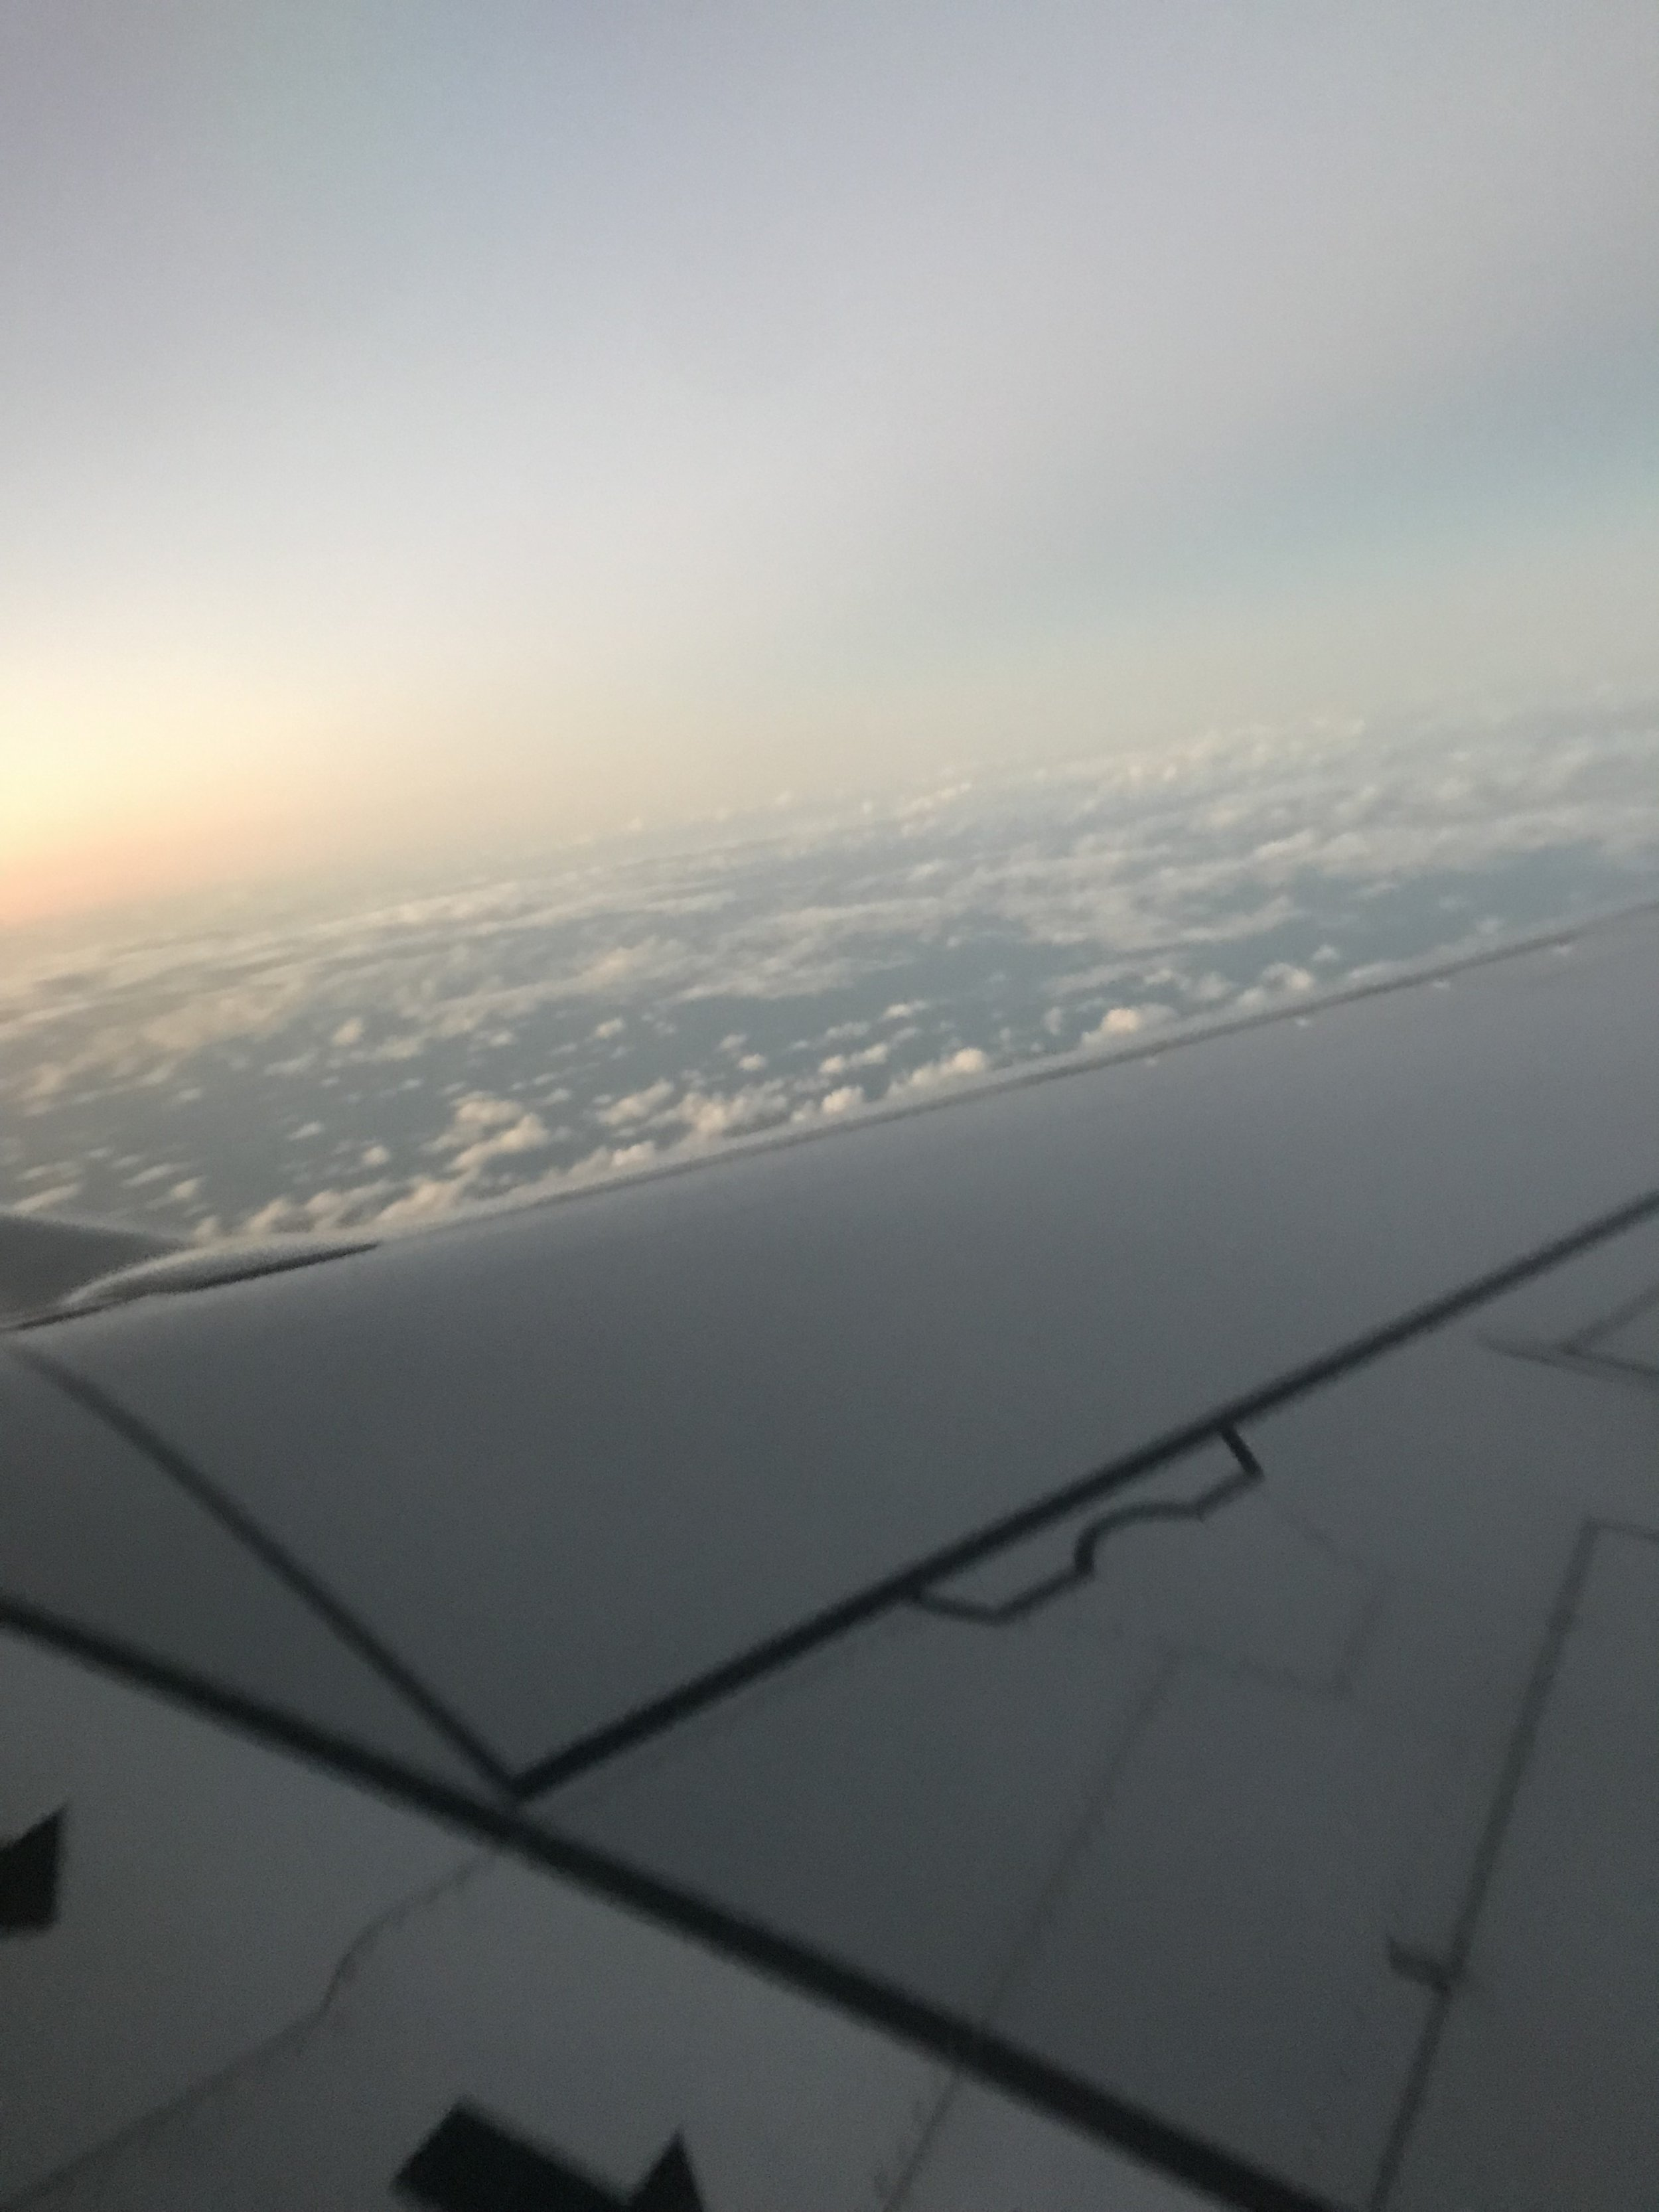 This is the view from our plane ride on the way back to Orlando (where our layover is) from Puerto Rico!